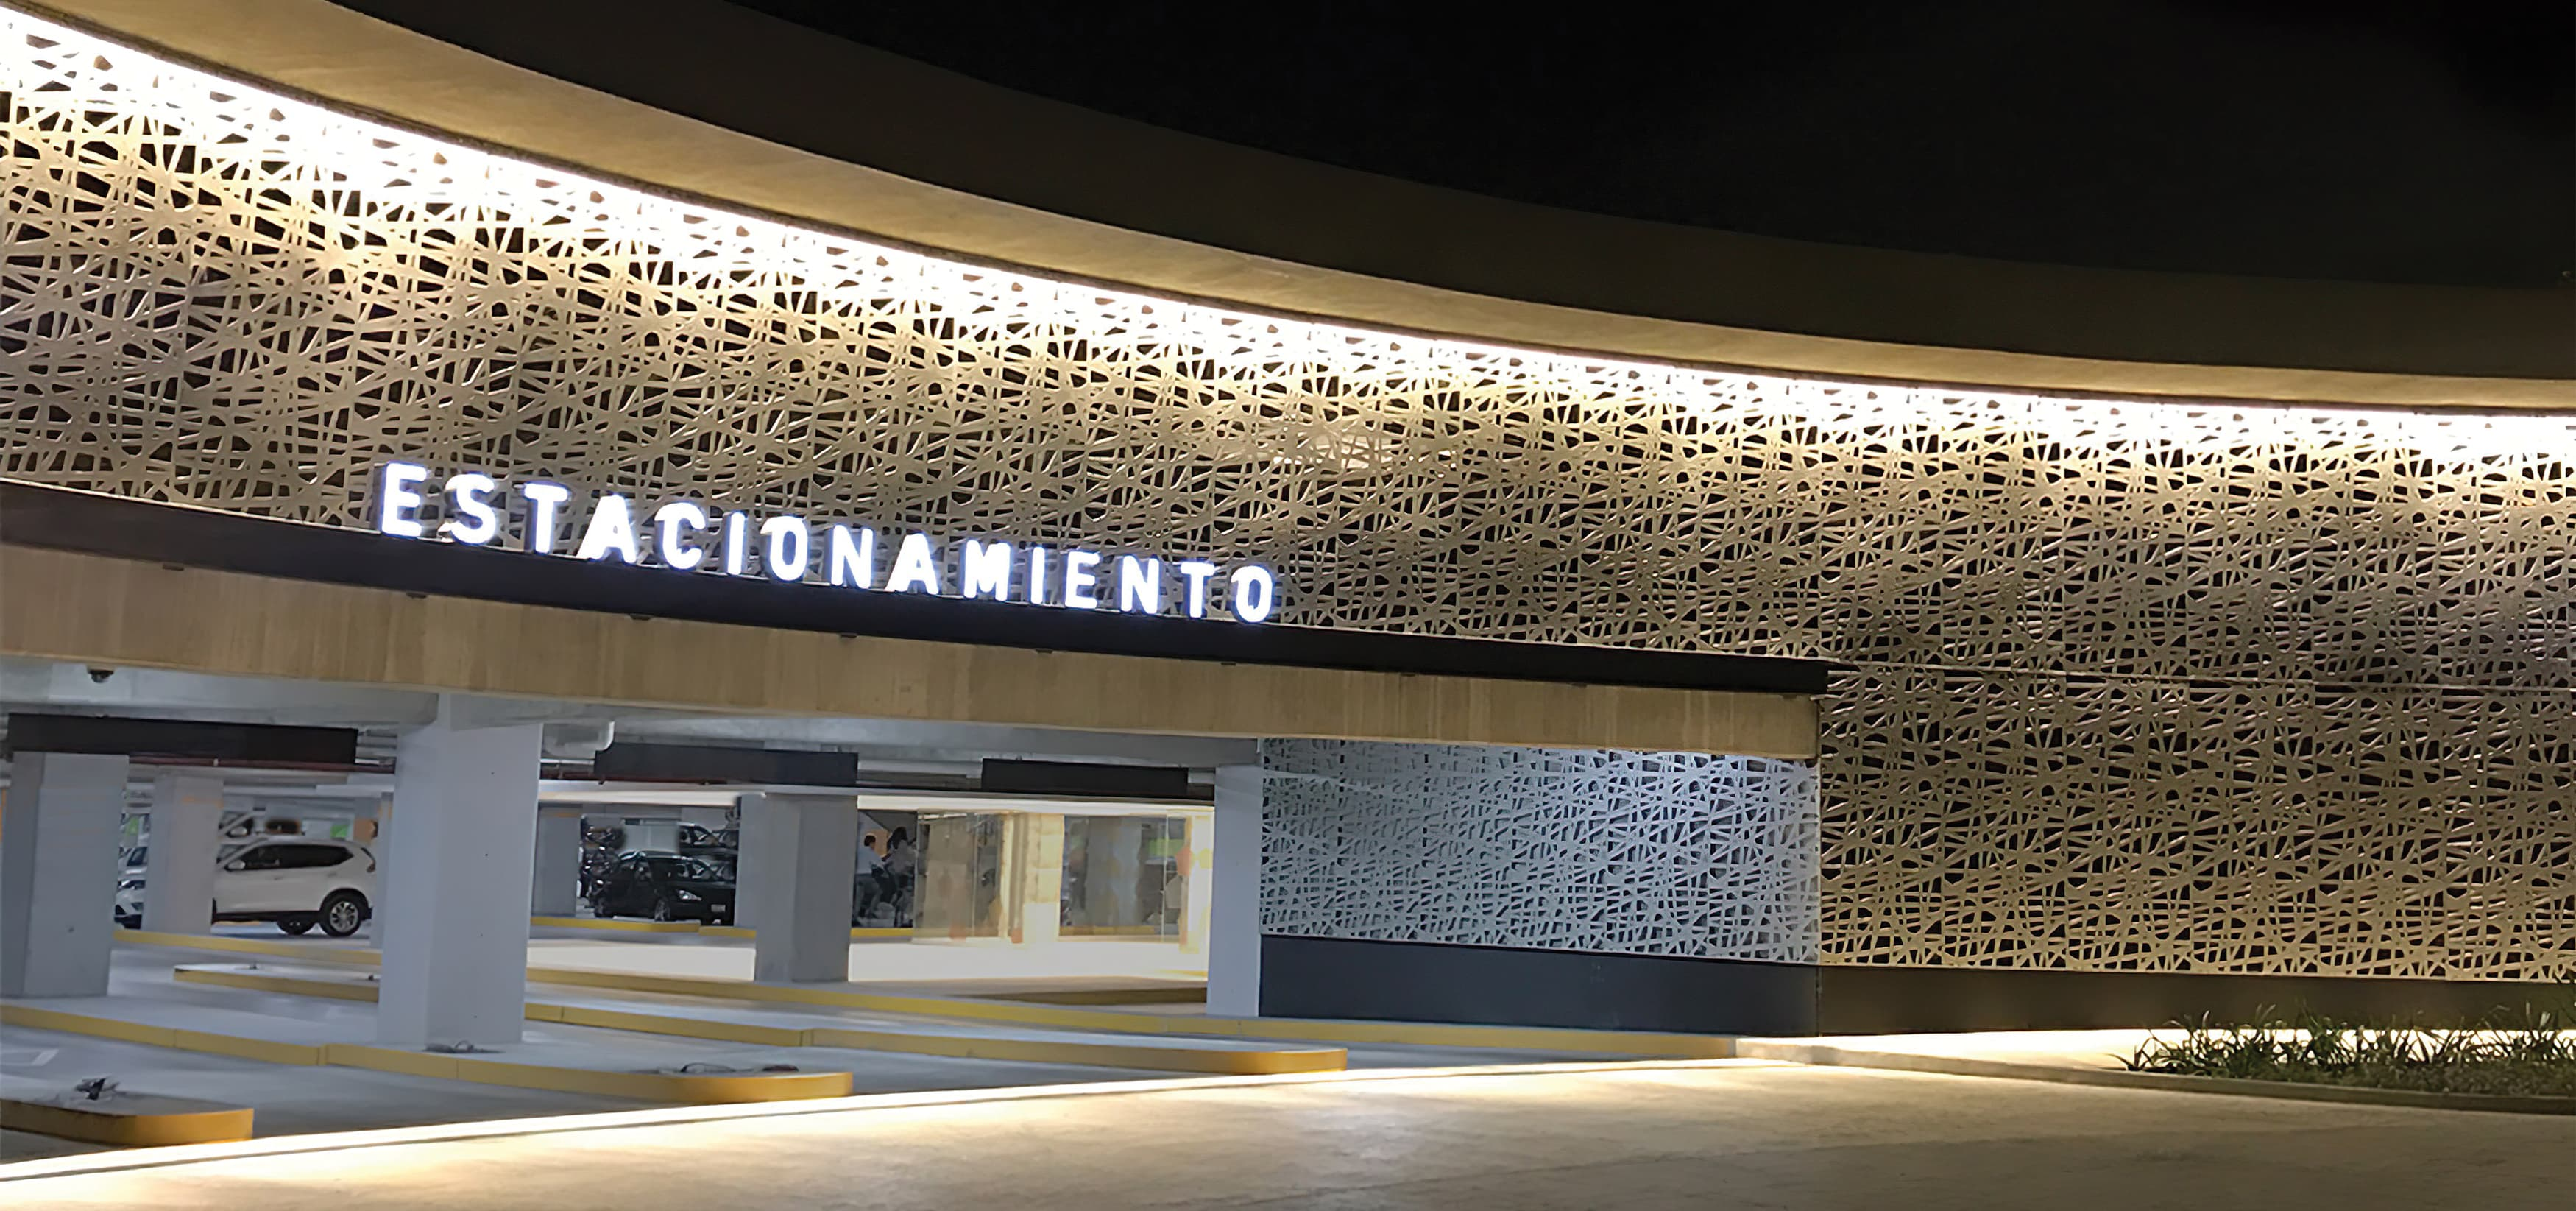 Forum Cuernavaca, a retail and mixed-use project in Cuernavaca, Mexico, parking identity signage